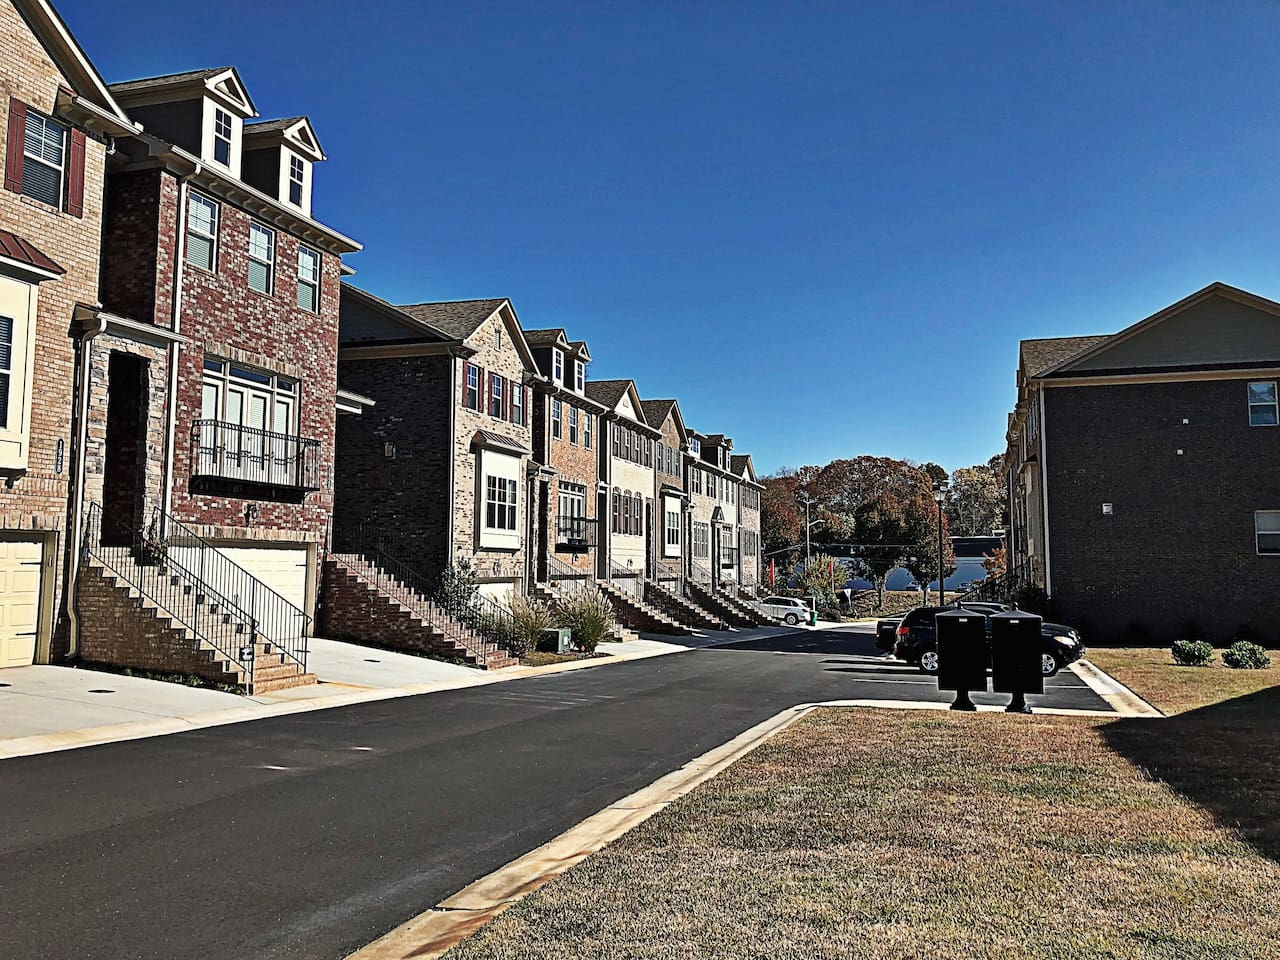 This is the outside of our beautiful town home. There are two guest parking areas with plenty of space to park.